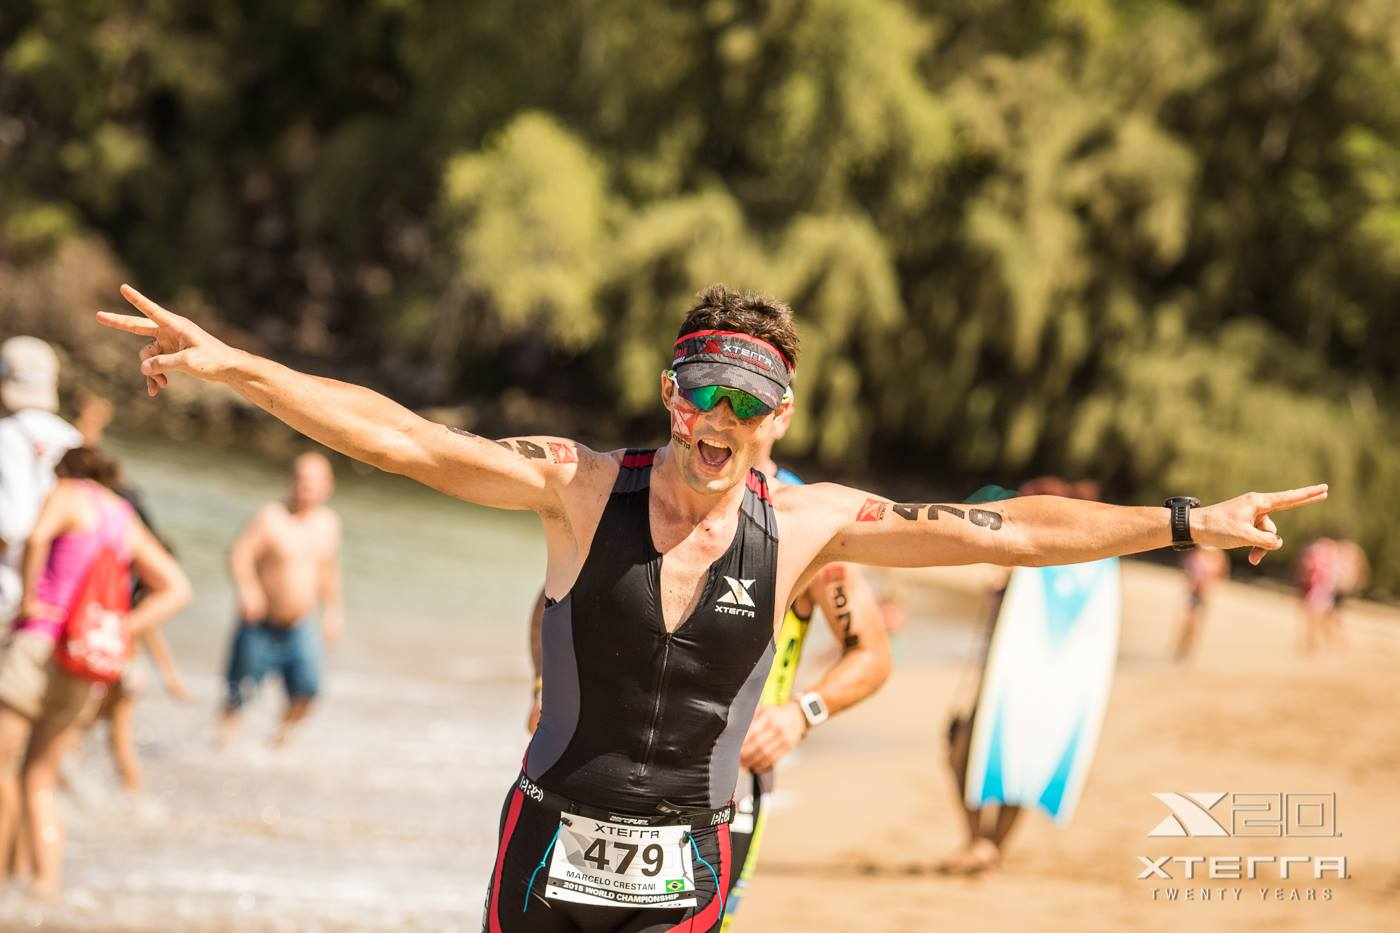 XTERRA_WORLD_CHAMPIONSHIP_2015_00080